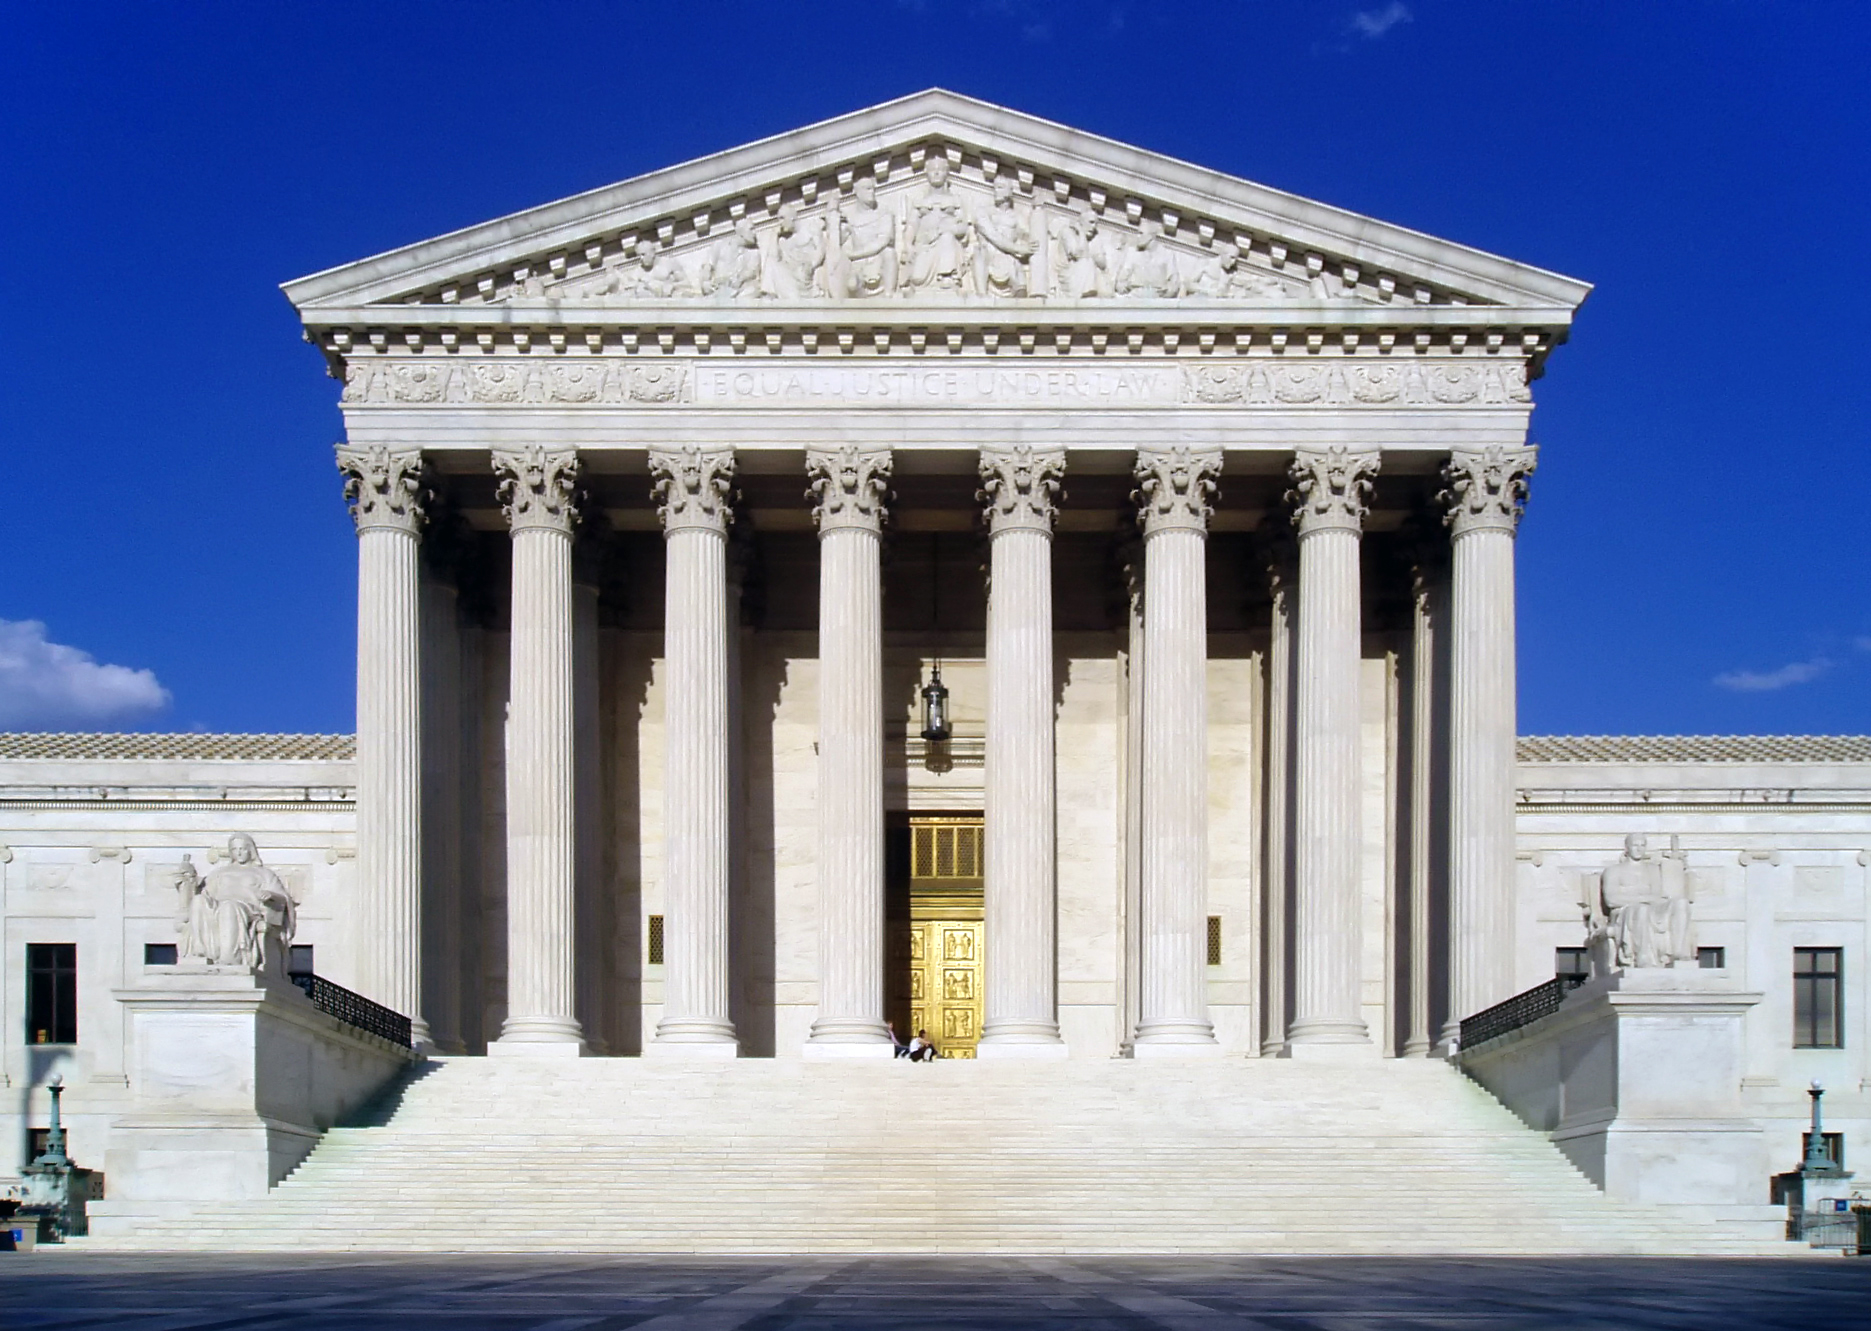 The U.S. Supreme Court's 2014 Term- High and Low Profile Decisions with Lurking Access Issues